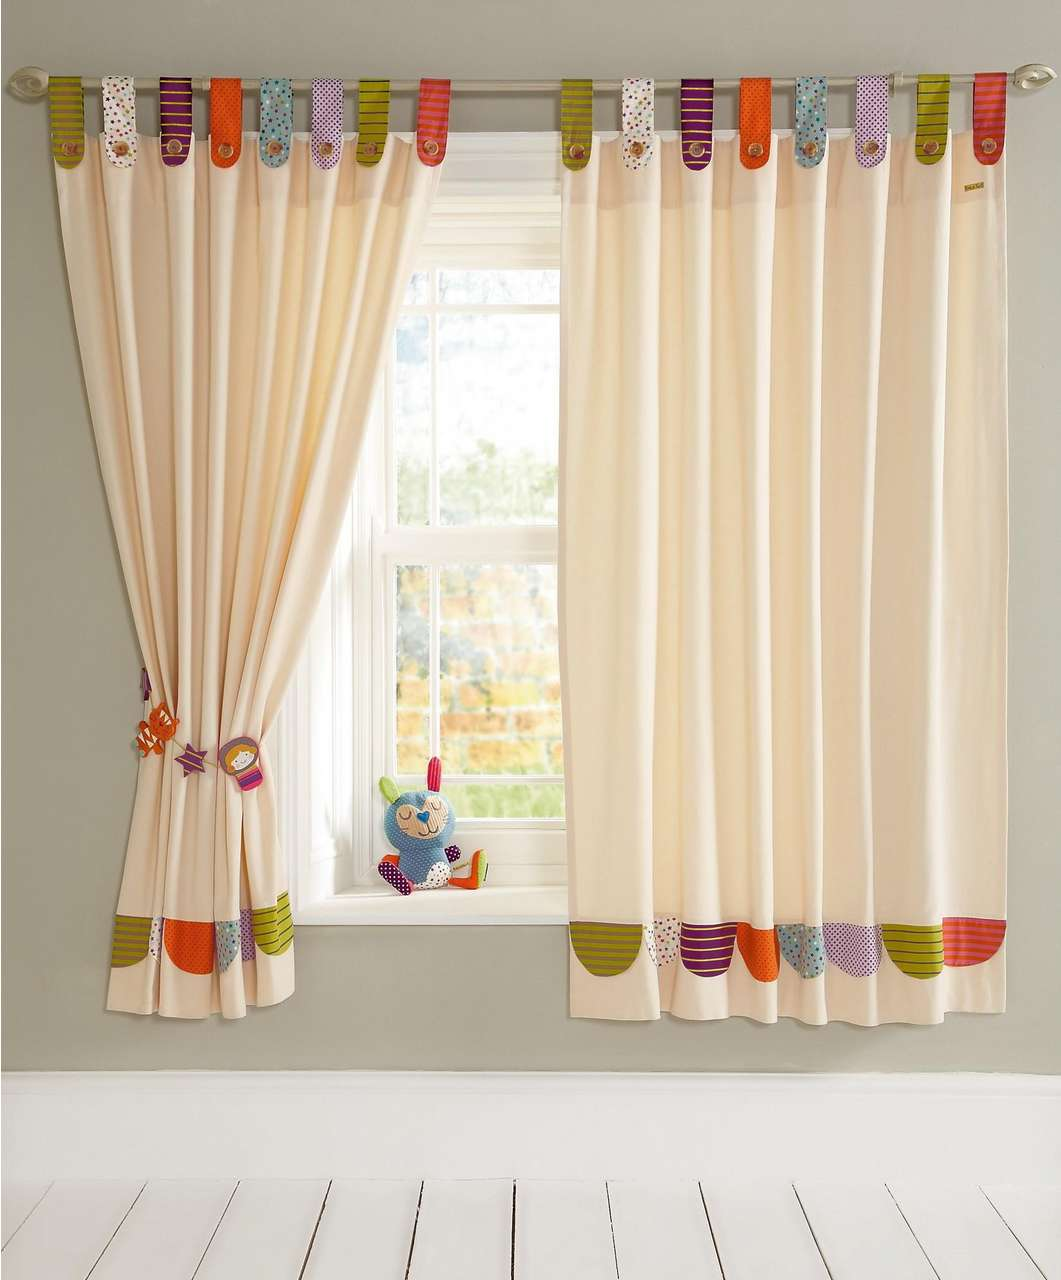 Playful With Blackout Curtains Nursery Colorful Accents On Its Top And Bottom Of The Curtain